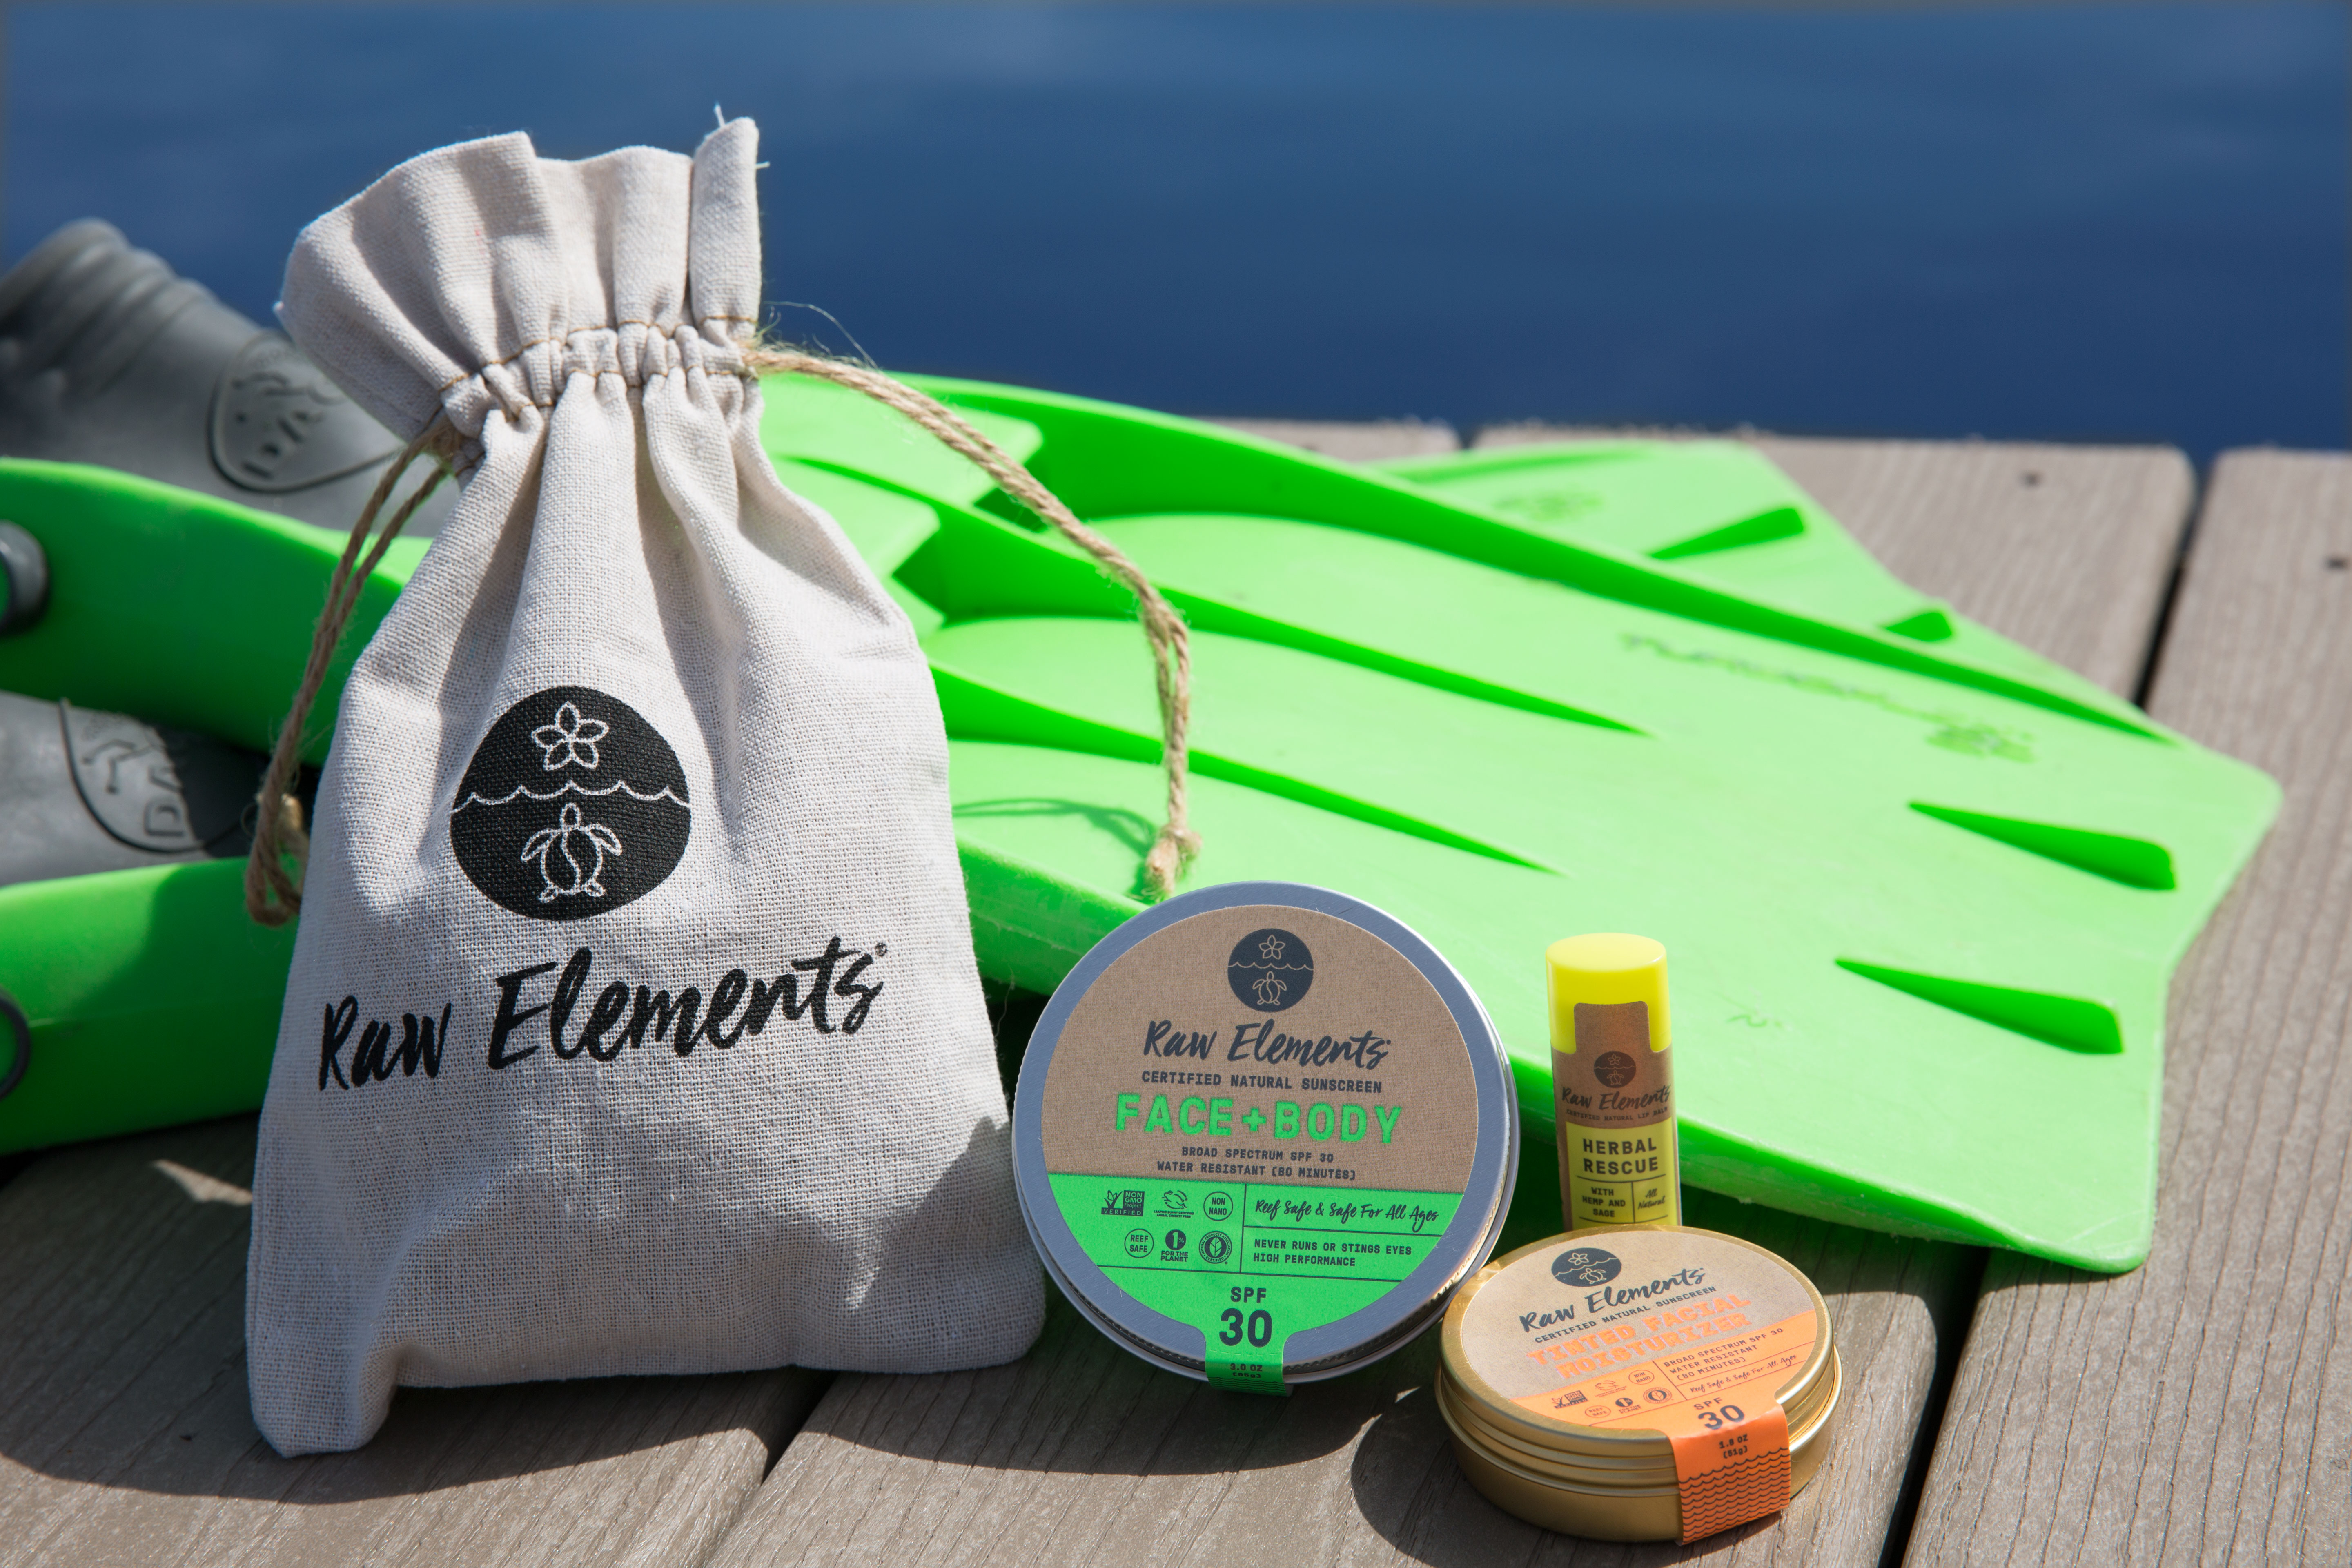 Summer Sunscreen Instagram Giveaway in Partnership with Raw Elements